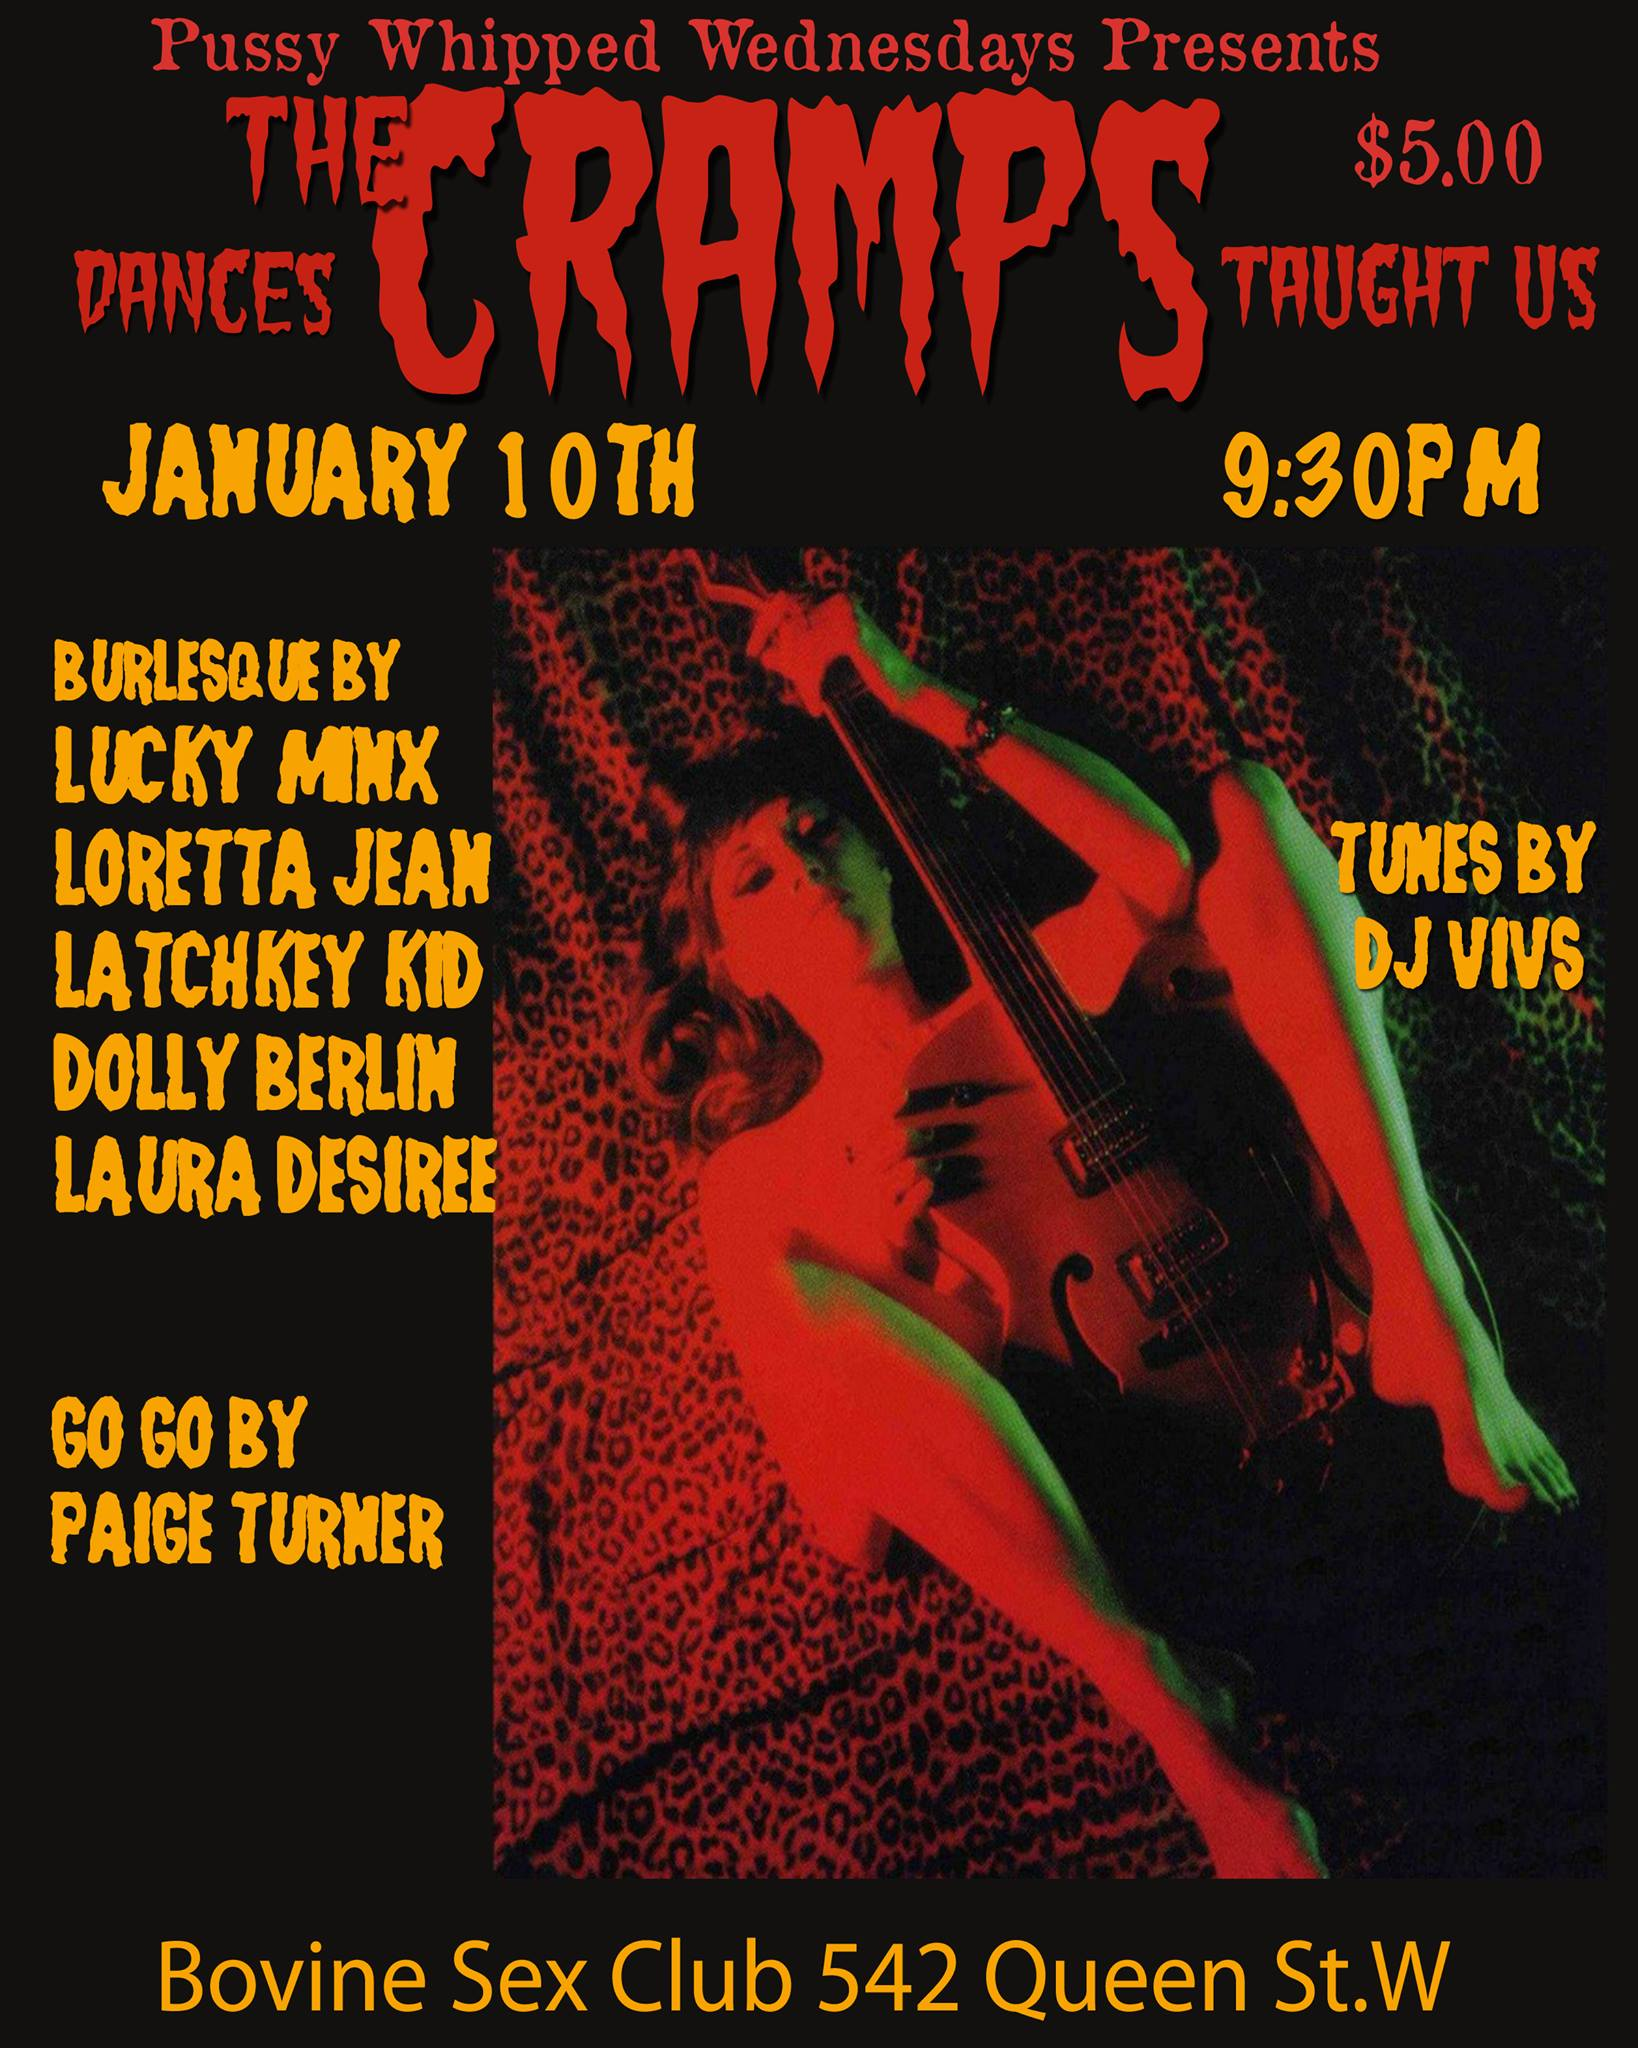 Pussy Whipped Wednesdays : Dances The Cramps Taught us